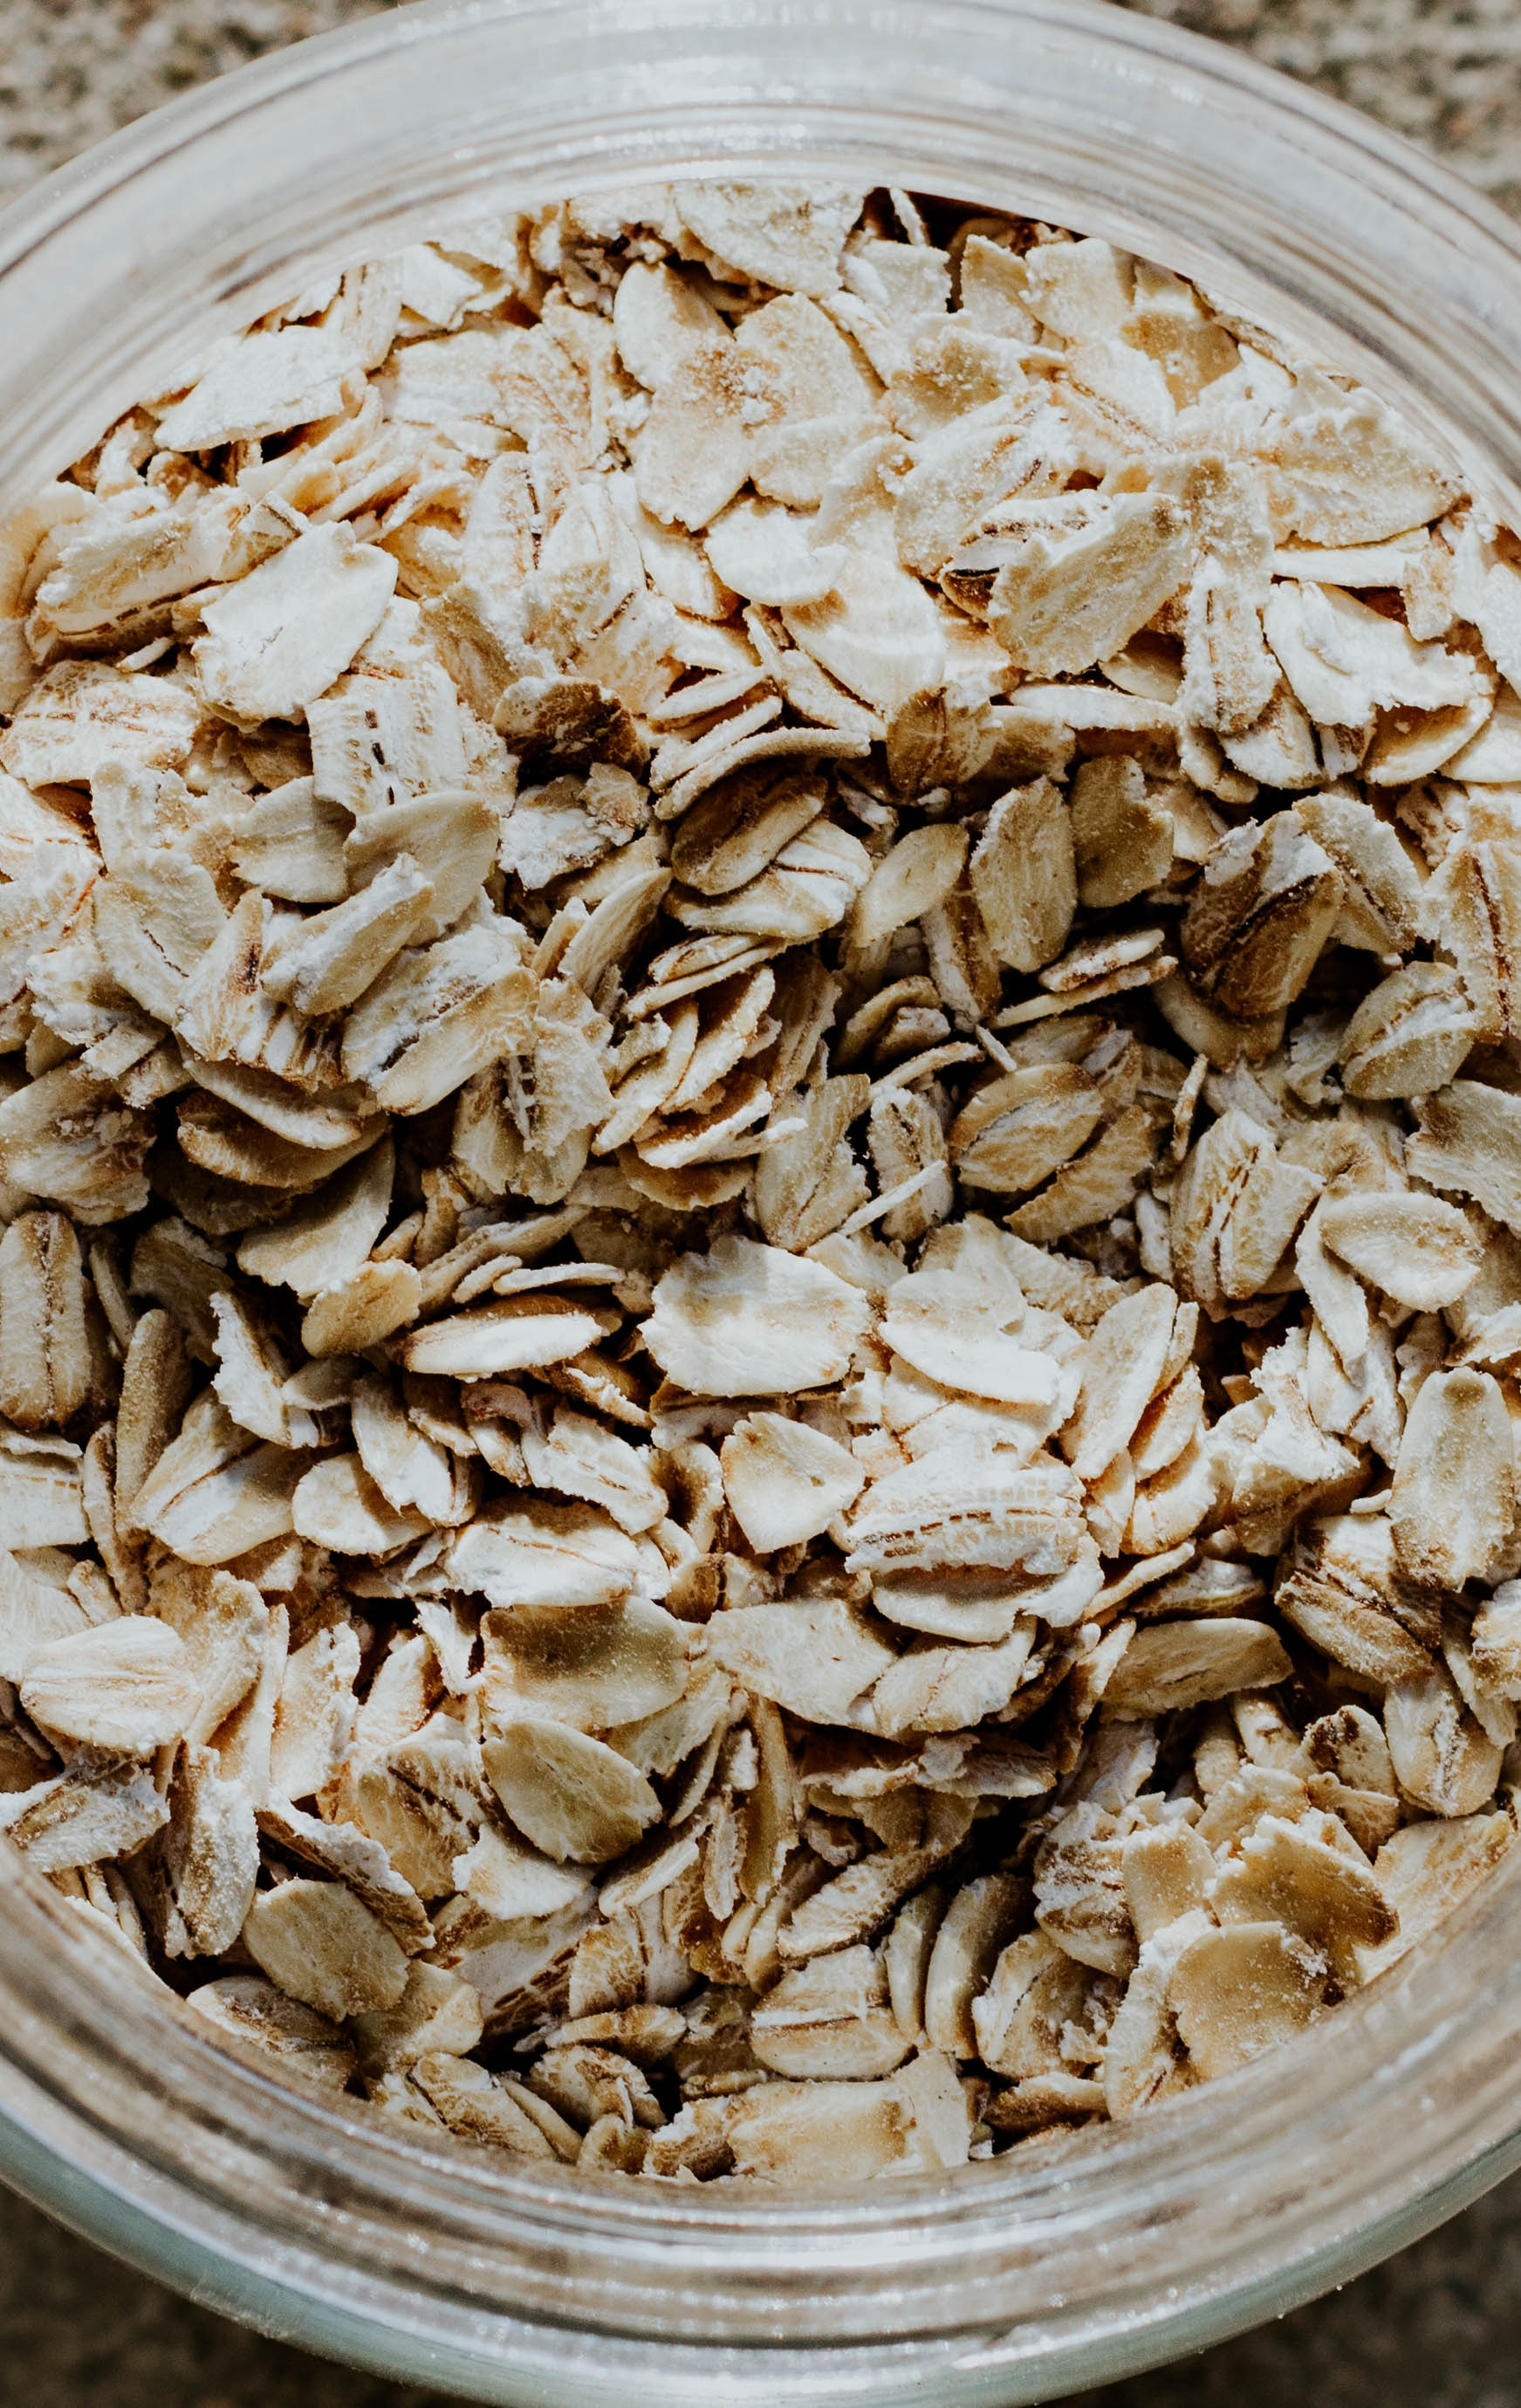 The best anti-aging foods: Oats is on our list. Check out the full list to make sure you're getting as much as you can, because why not?! | Cool Mom Eats (Photo: Andrea Tummons via Unsplash)